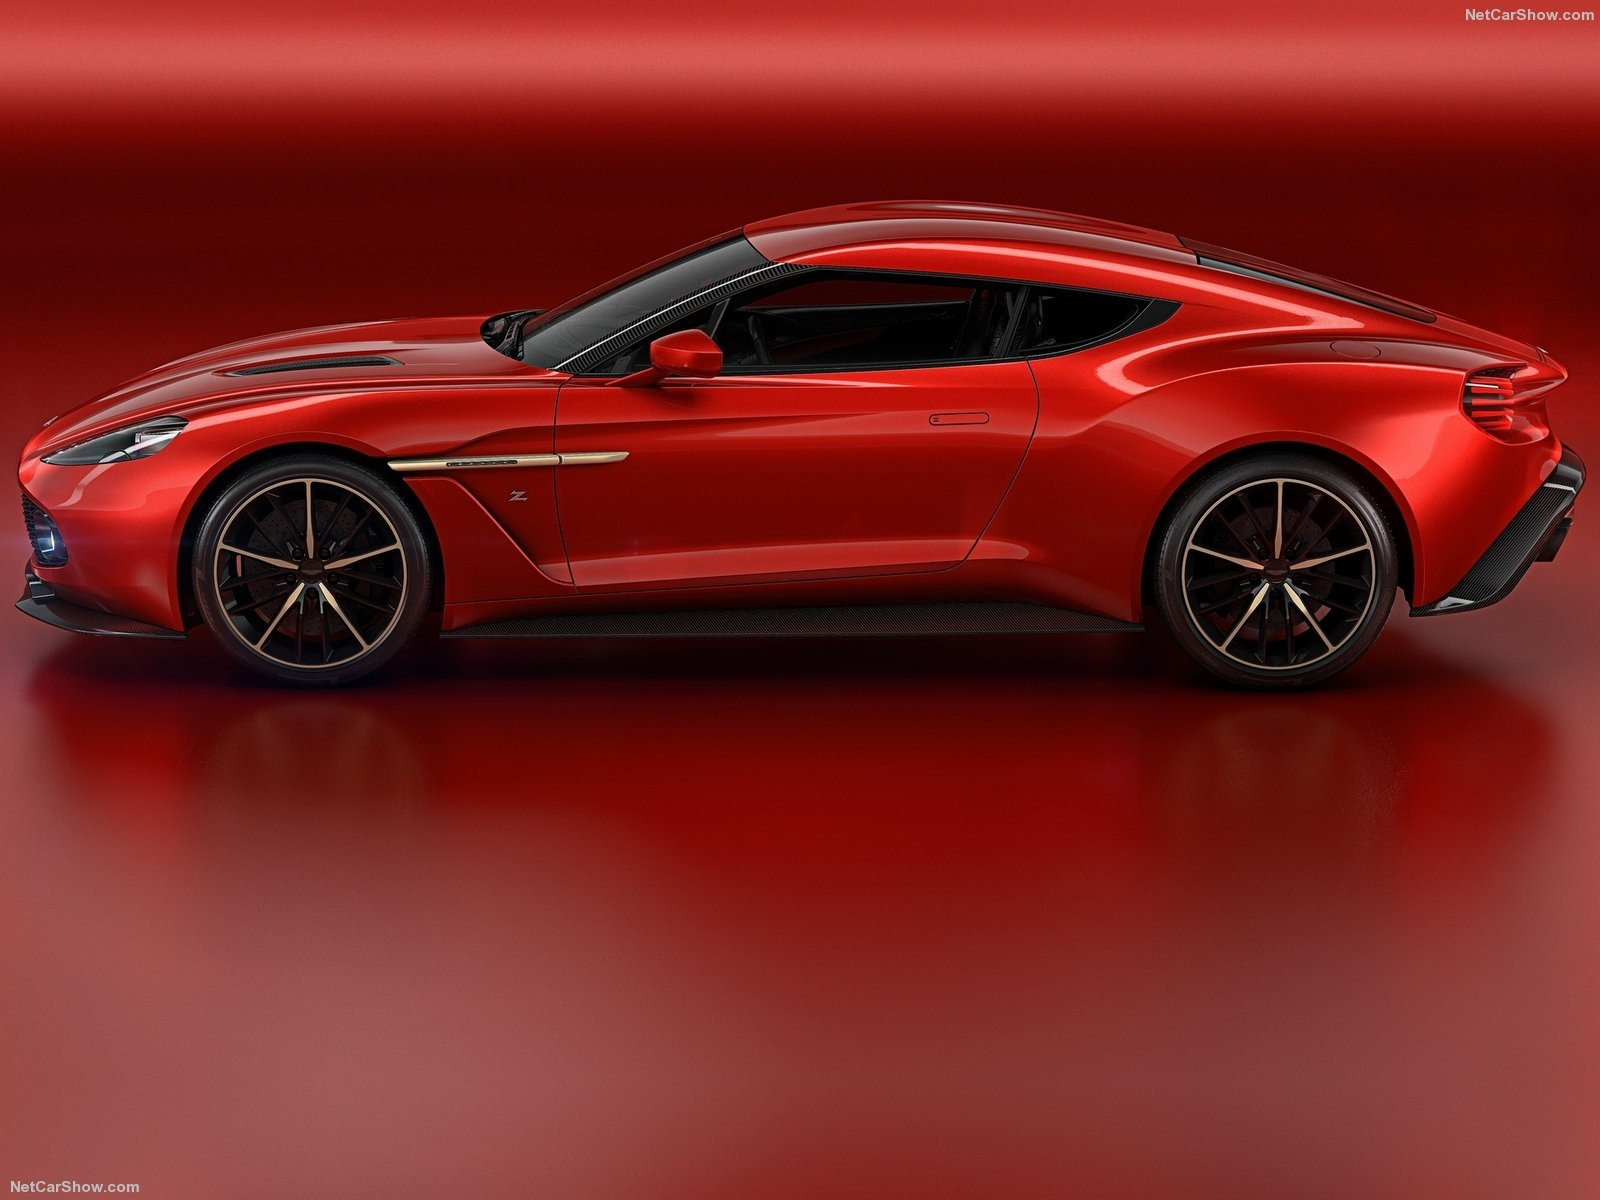 Aston Martin 2016 Vanquish Zagato Concept cars wallpaper background